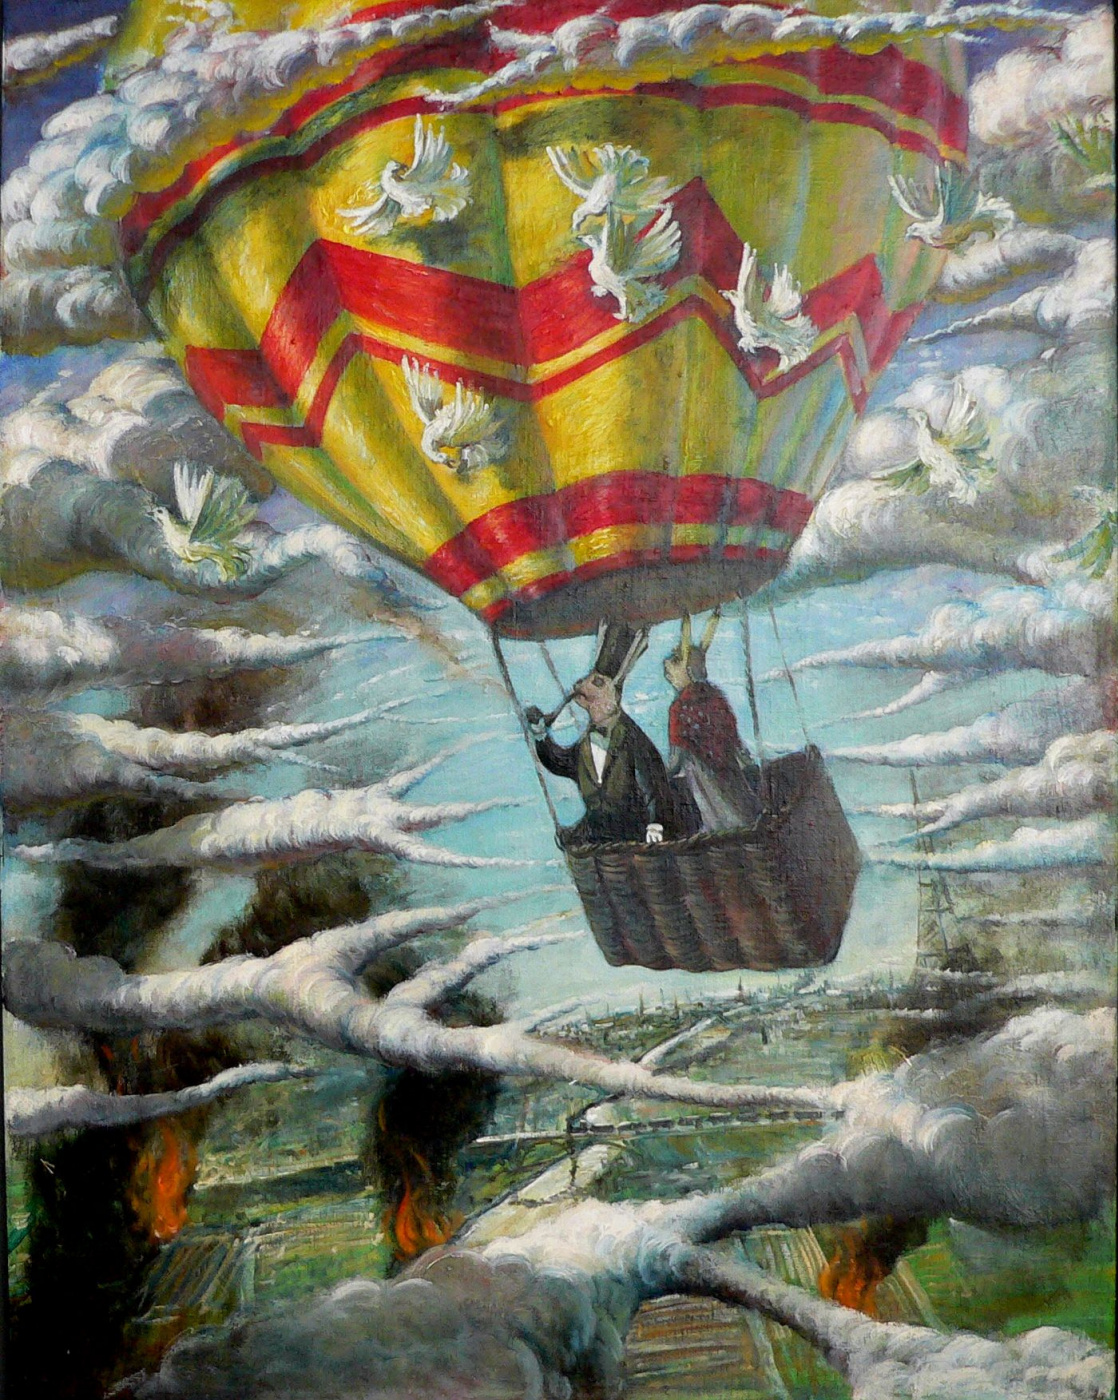 Sergey Viktorovich Solomatin. Hot air balloon rabbits